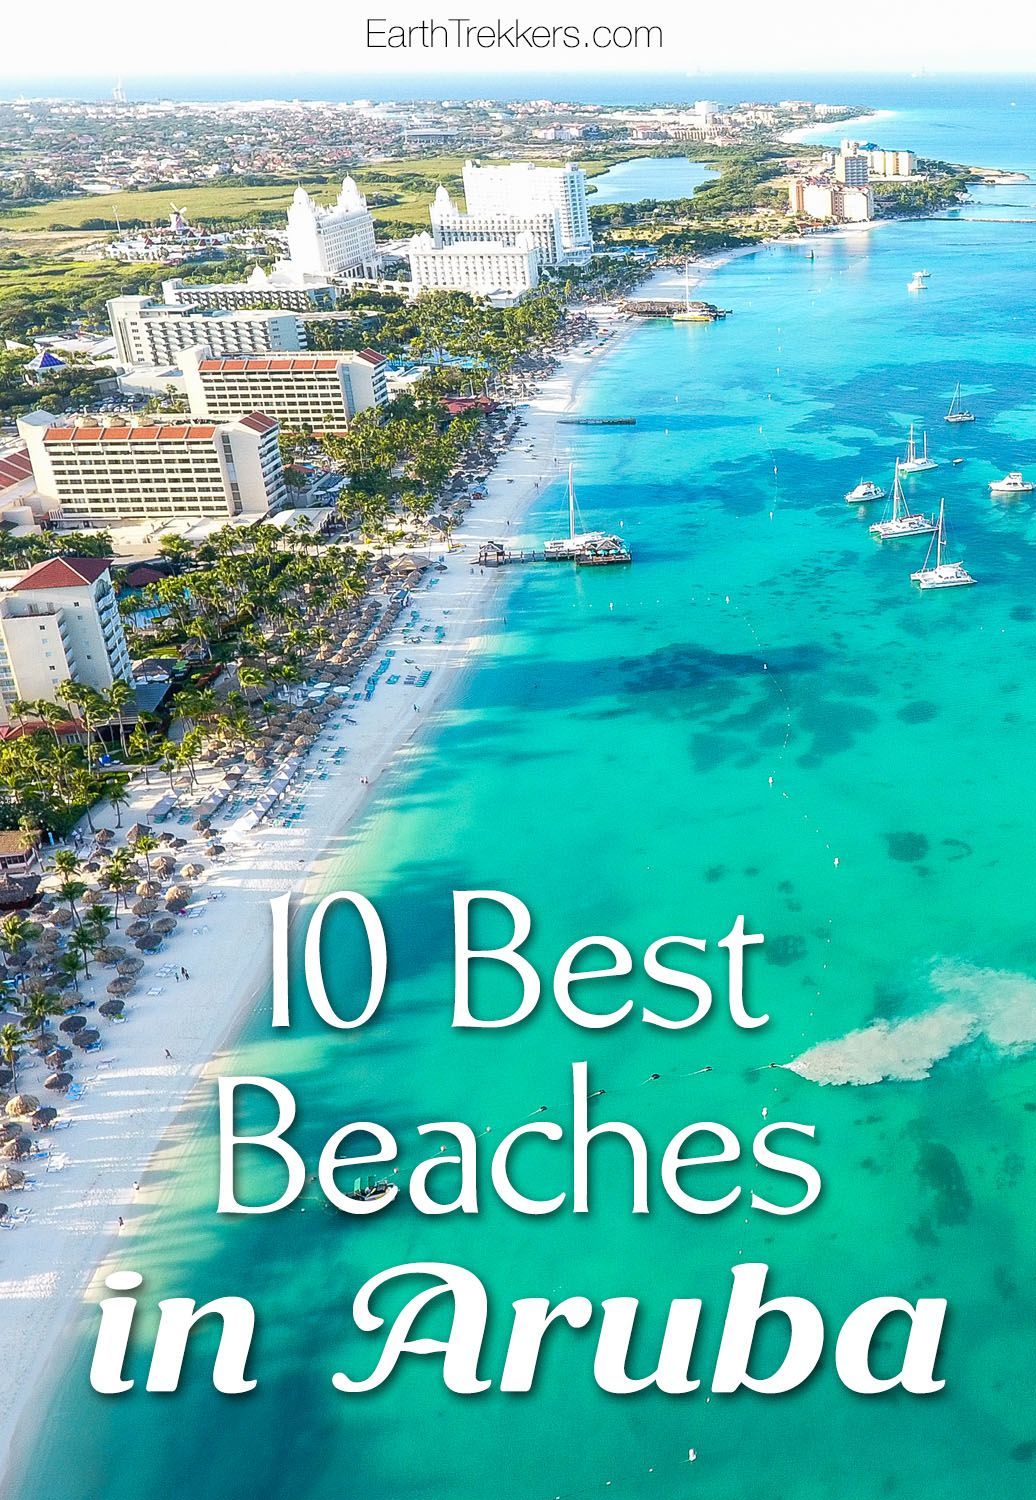 Best Beaches in Aruba: Eagle Beach, Palm Beach, Arashi Beach, and more.